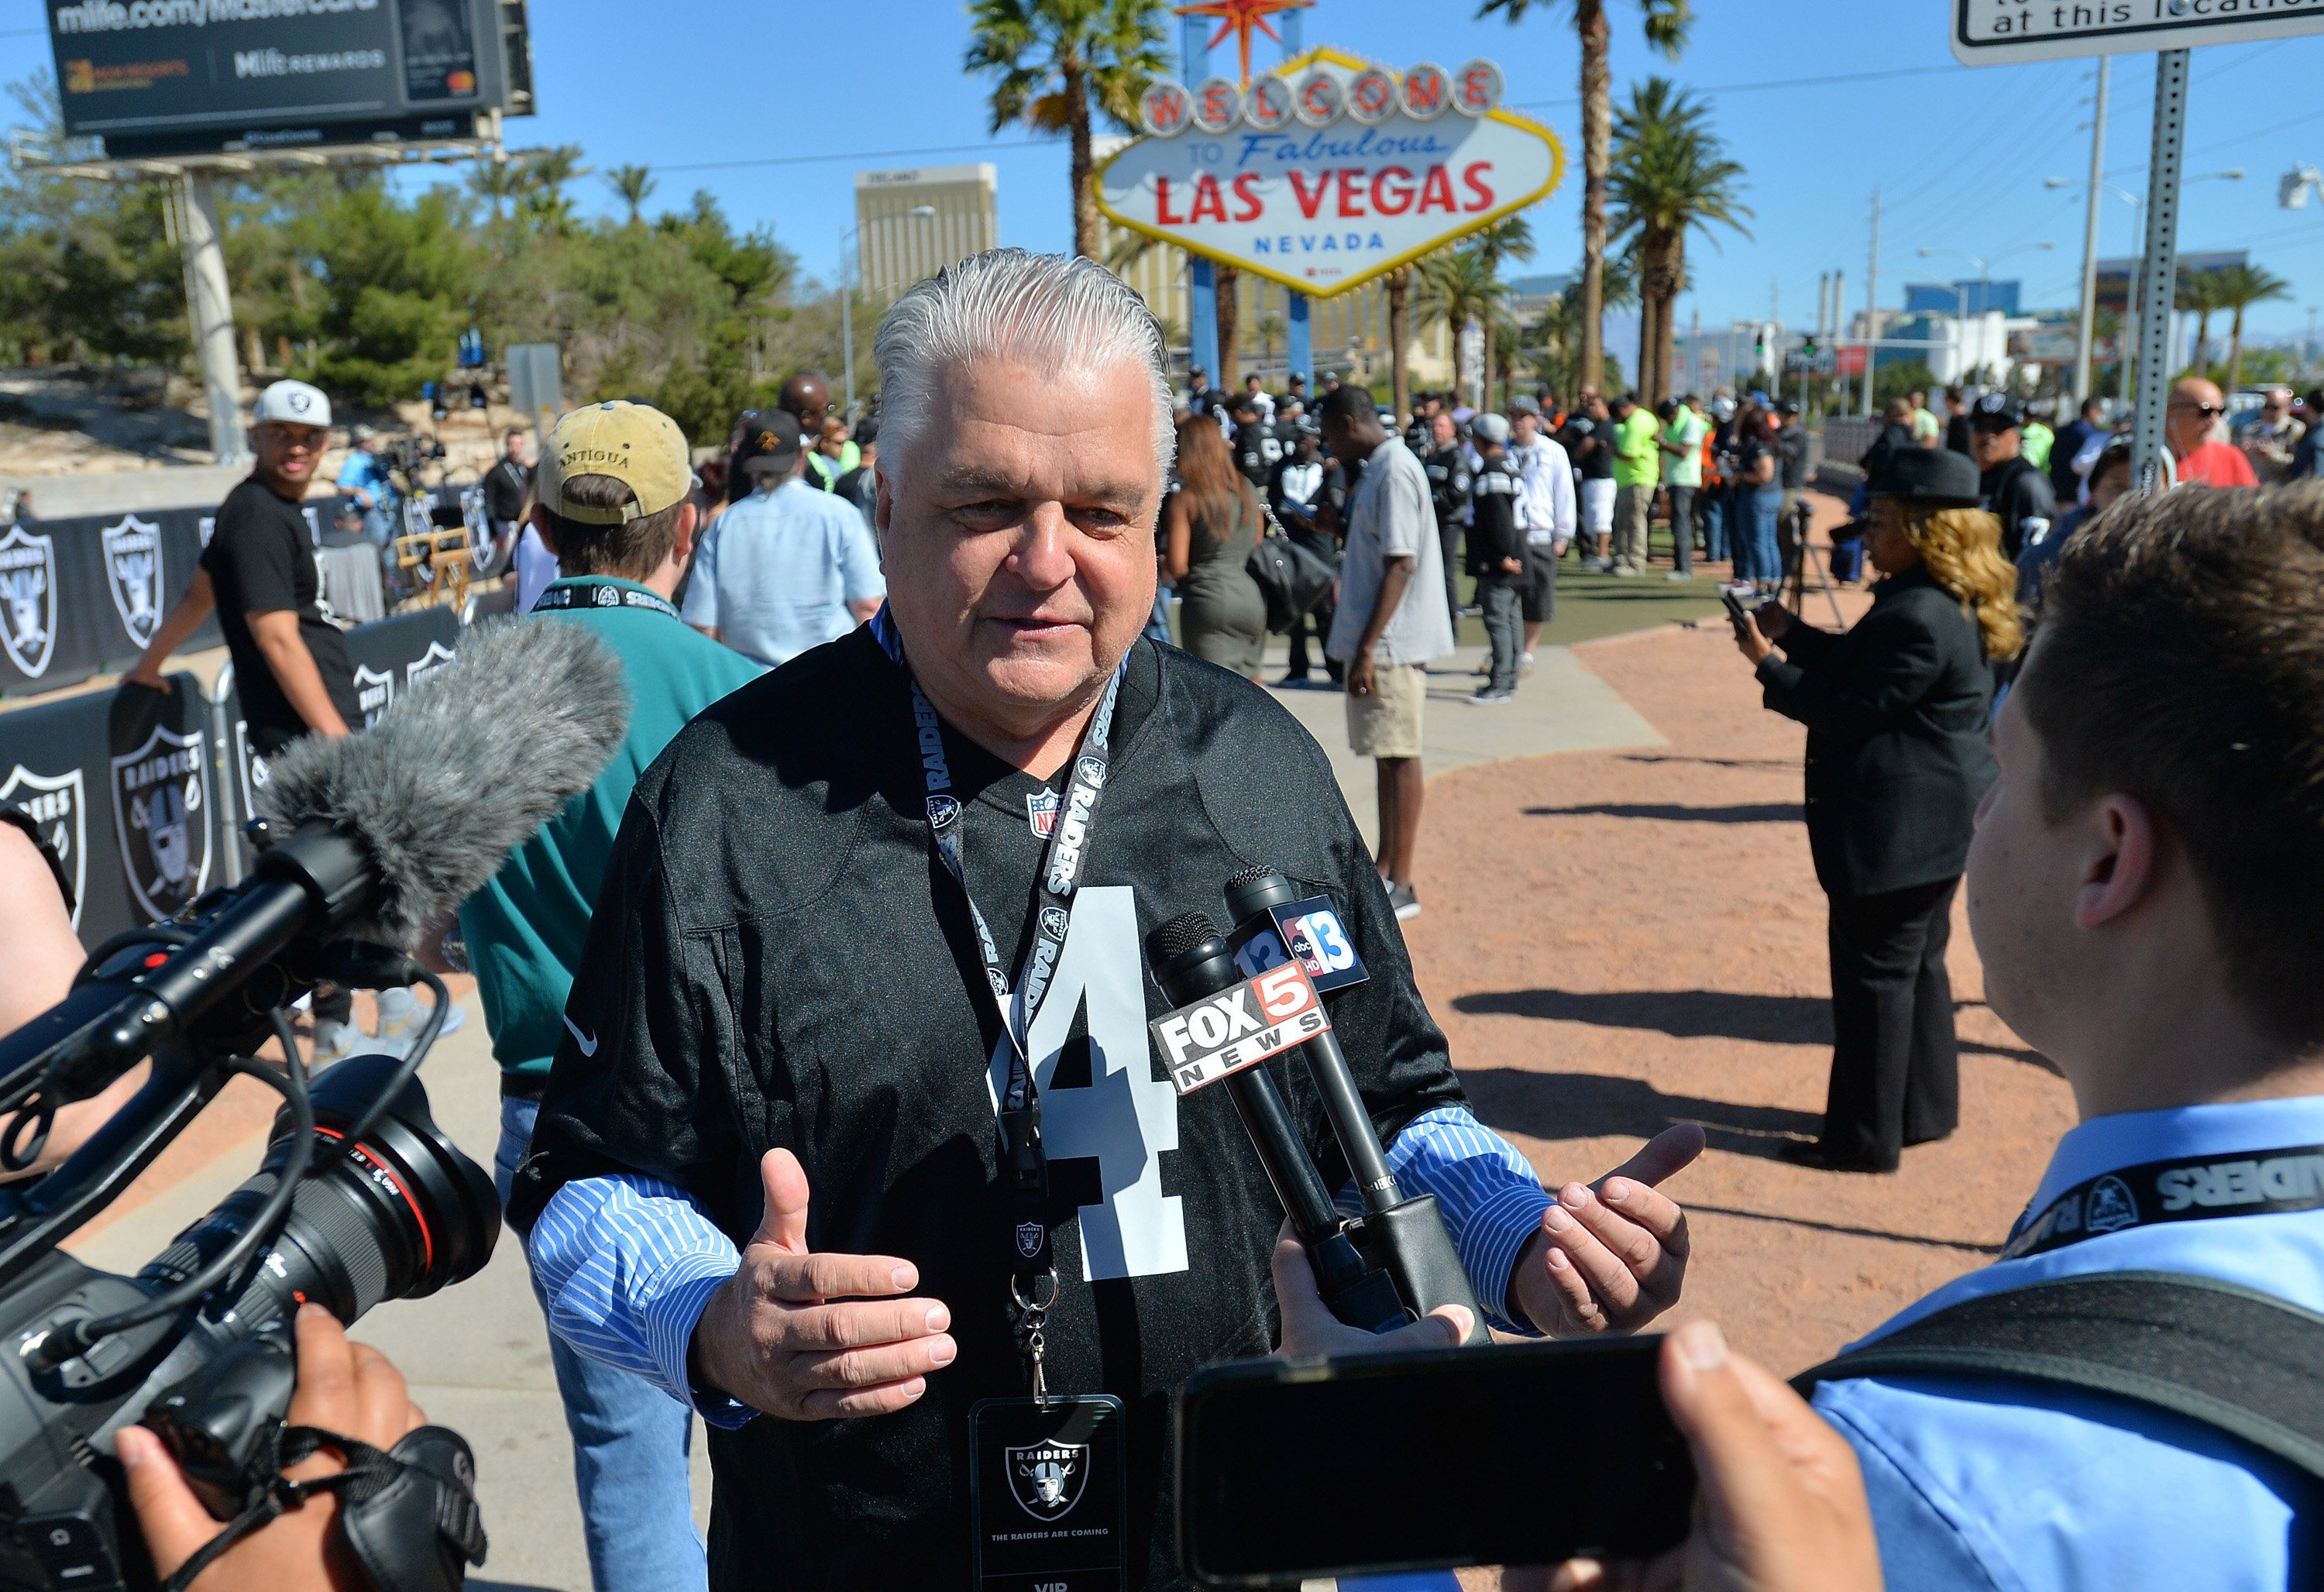 LAS VEGAS, NV - APRIL 29:  Clark County Commissioner Steve Sisolak is interviewed during the Oakland Raiders 2017 NFL Draft event at the Welcome to Fabulous Las Vegas sign on April 29, 2017 in Las Vegas, Nevada. National Football League owners voted in March to approve the team's application to relocate to Las Vegas. The Raiders are expected to begin play no later than 2020 in a planned 65,000-seat domed stadium to be built in Las Vegas at a cost of about USD 1.9 billion.  (Photo by Sam Wasson/Getty Images)